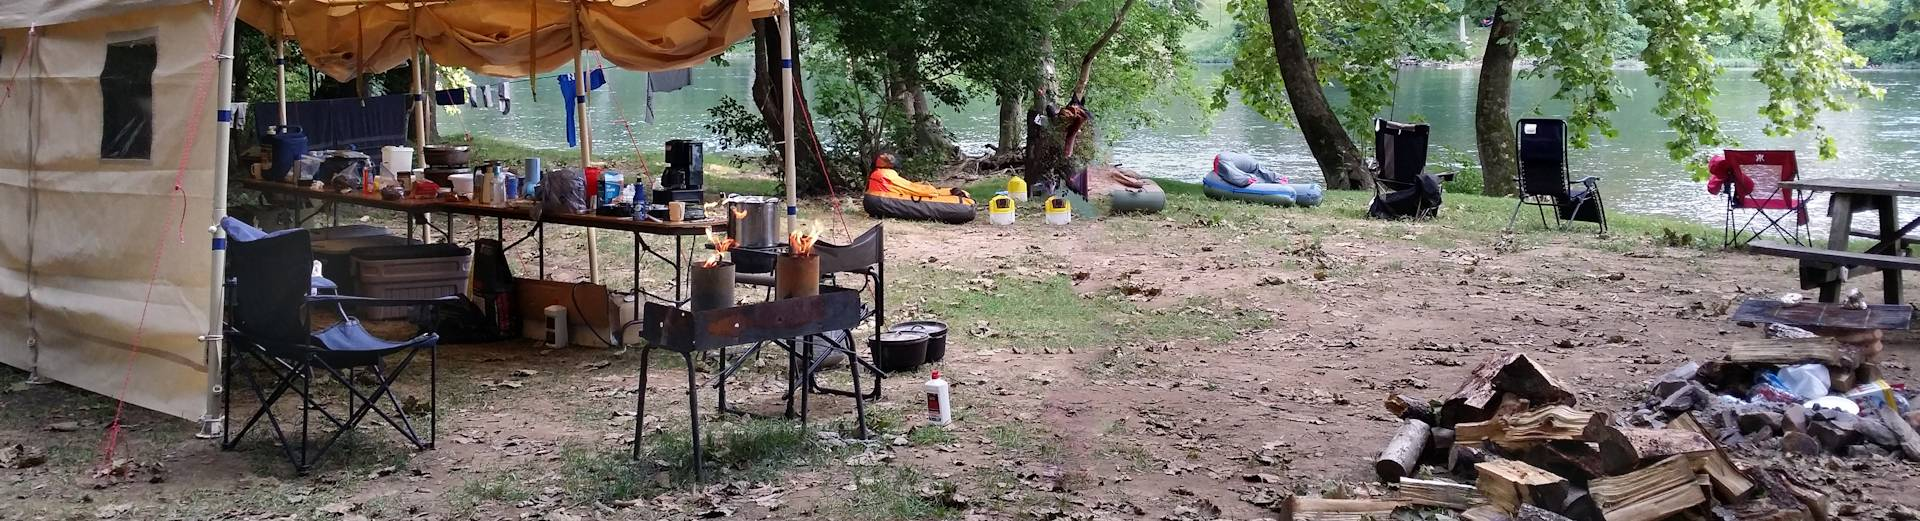 Riverfront Campground The Country Place Cabin Rentals In